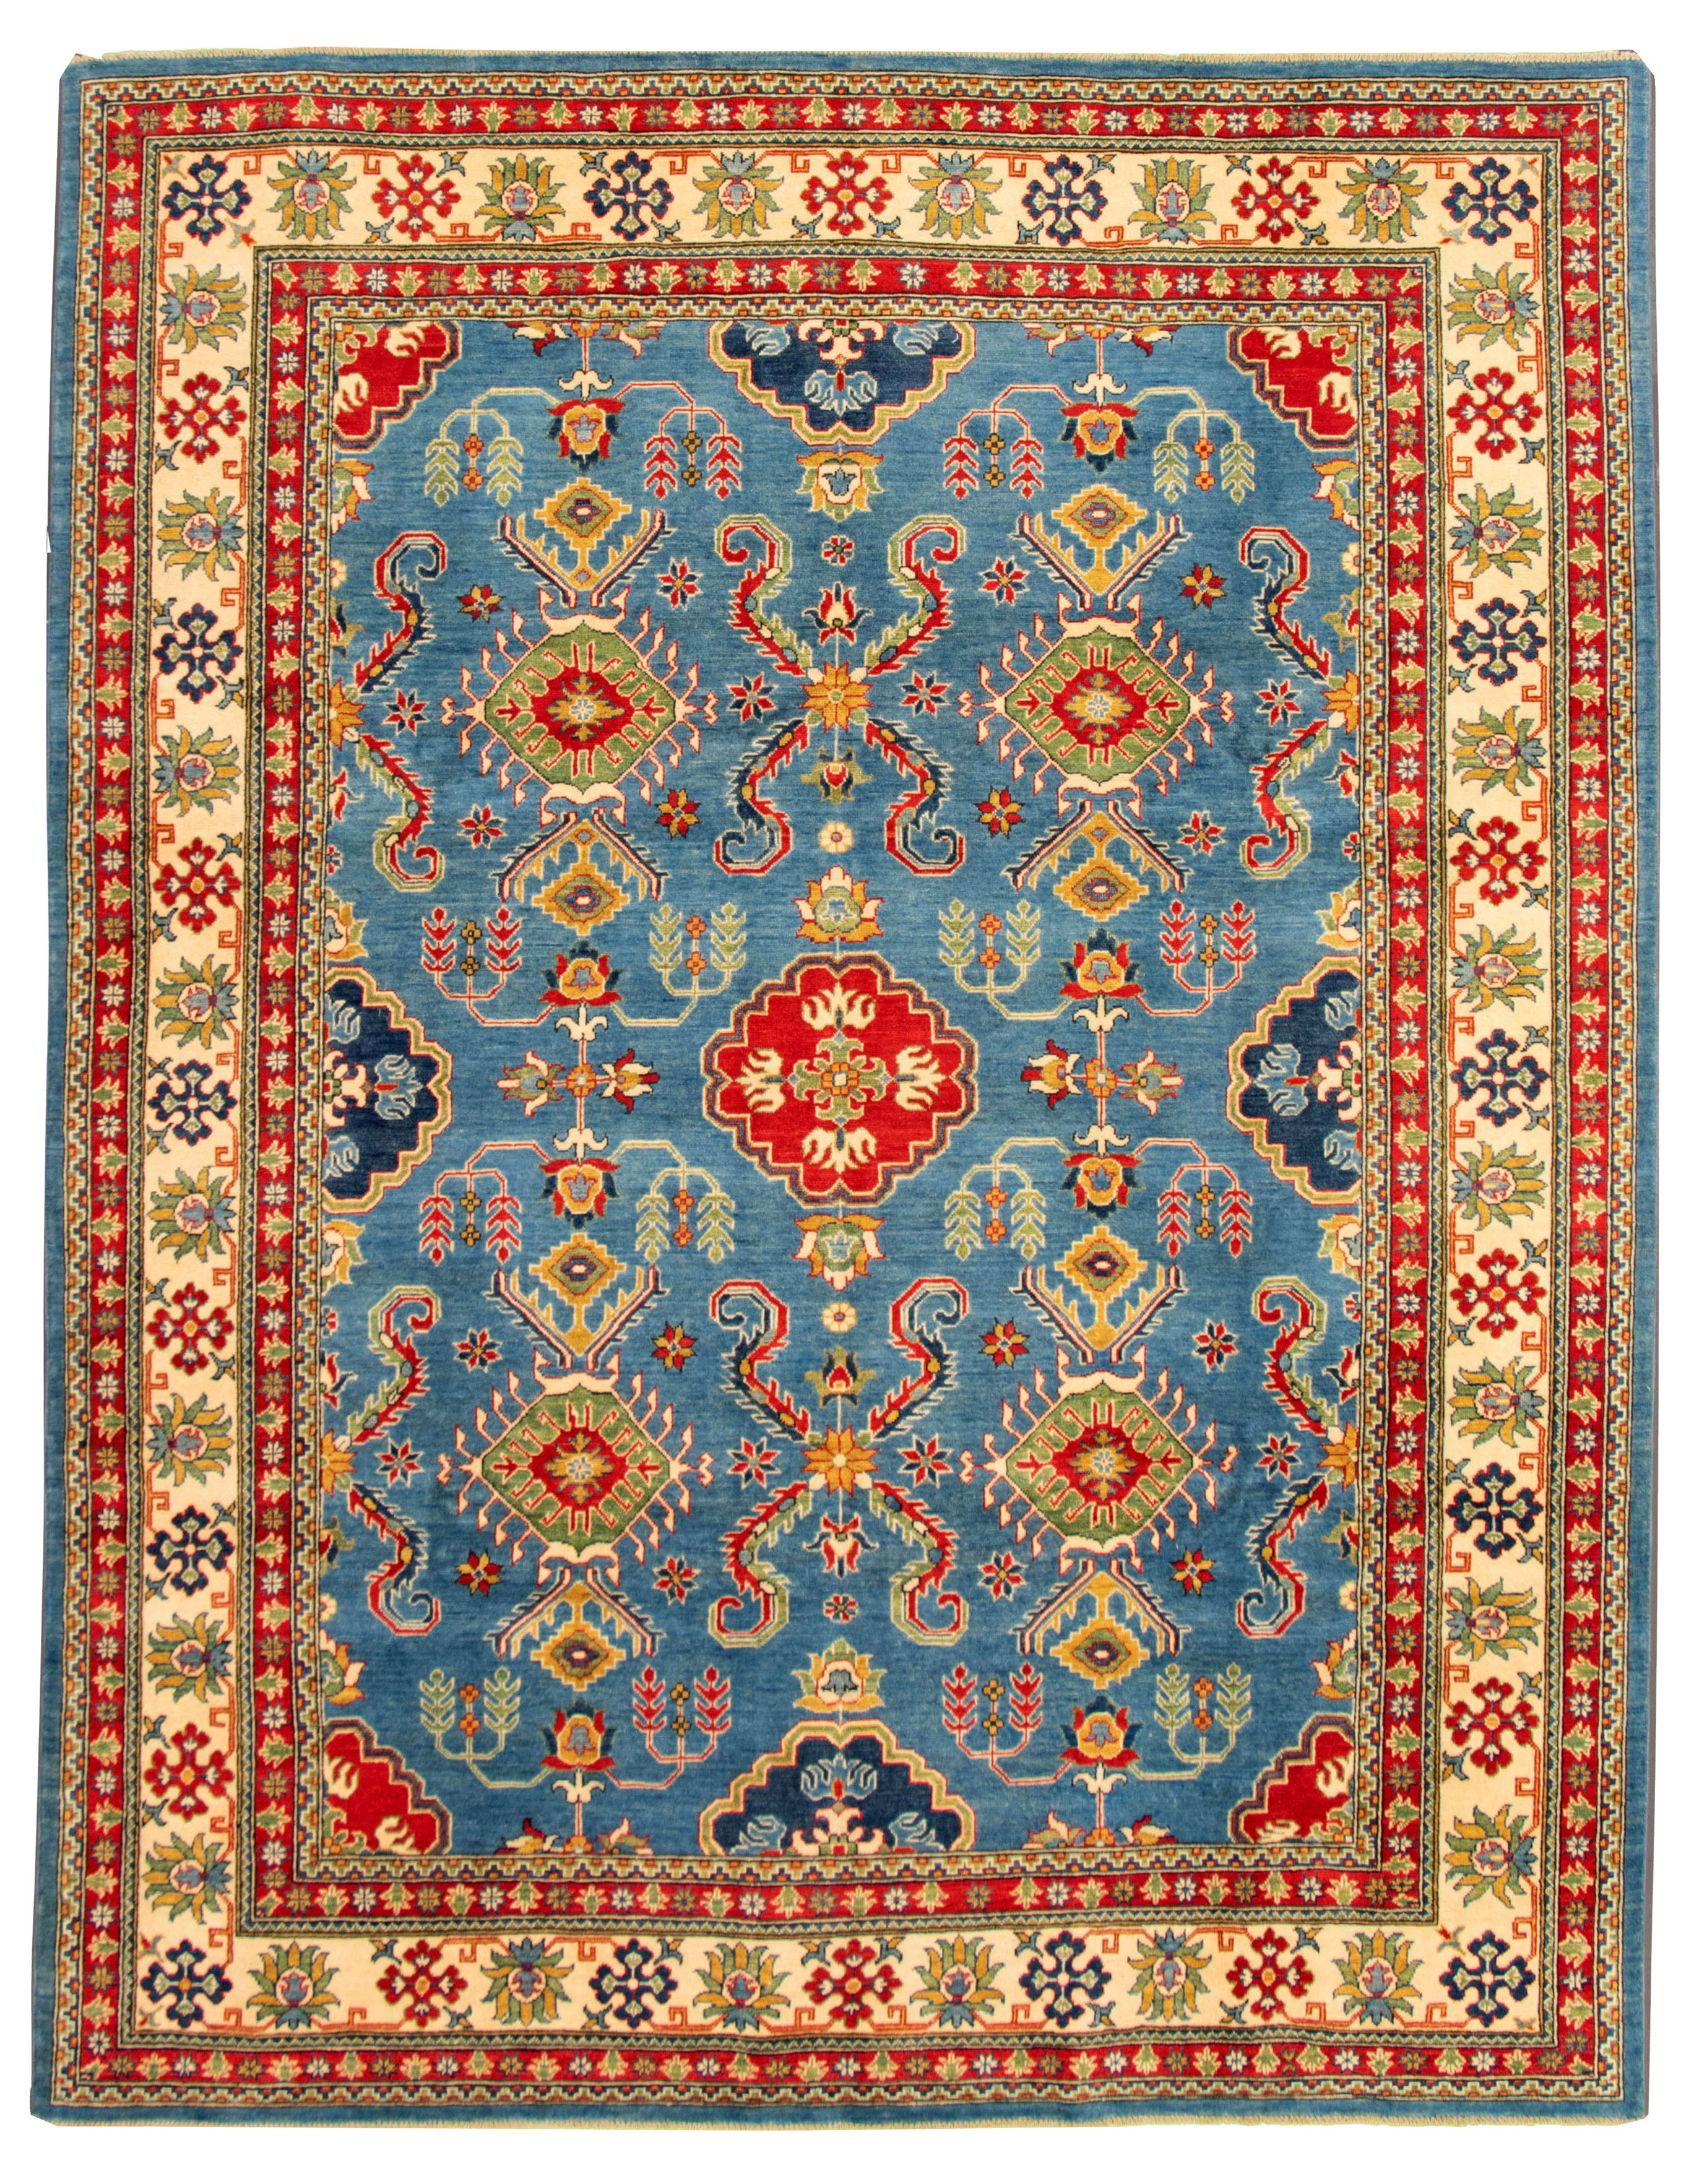 """Hand-knotted Finest Gazni Blue Wool Rug 9'4"""" x 11'9""""  Size: 9'4"""" x 11'9"""""""